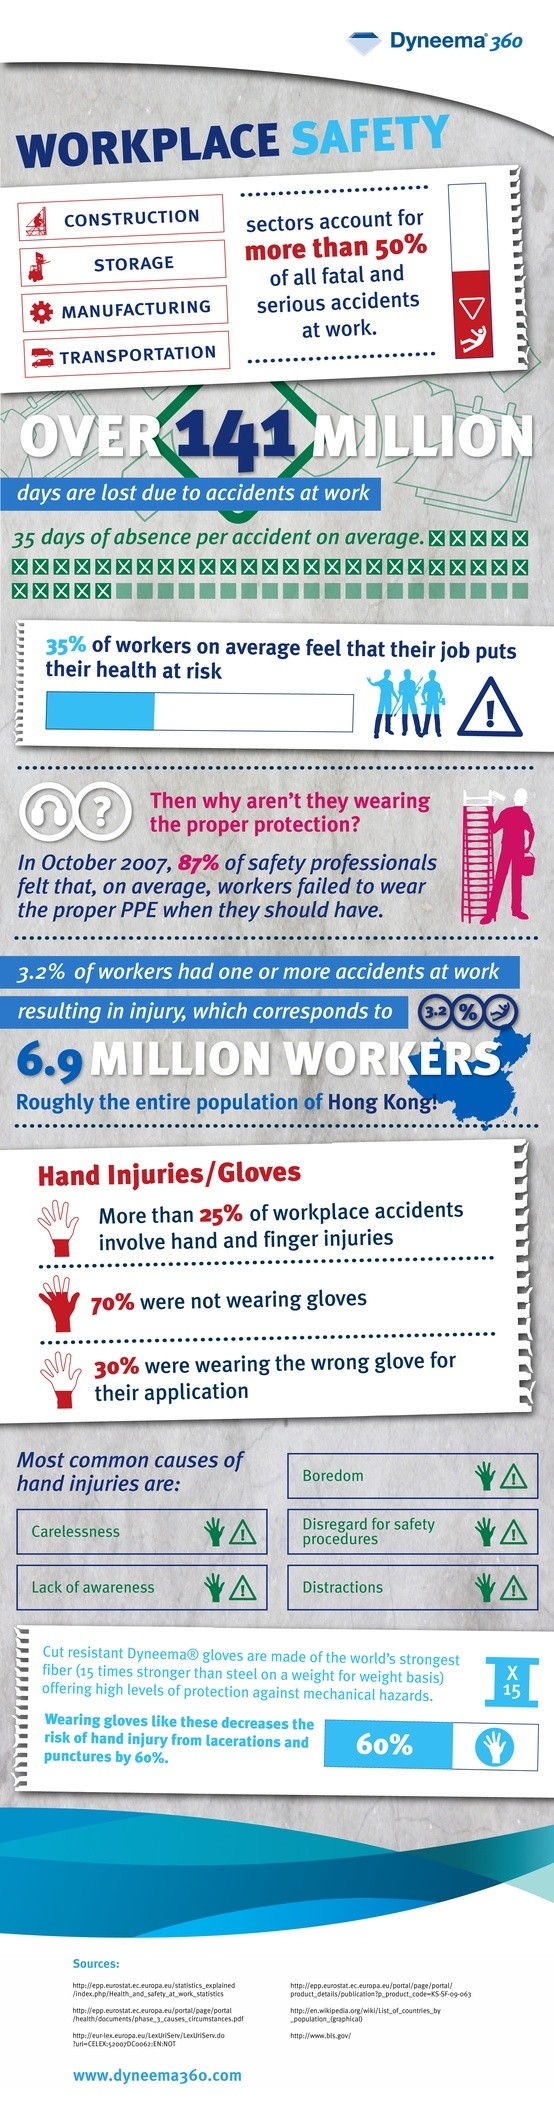 Workplace Safety Infographic: Workplace Safety - ComplianceandSafety.com